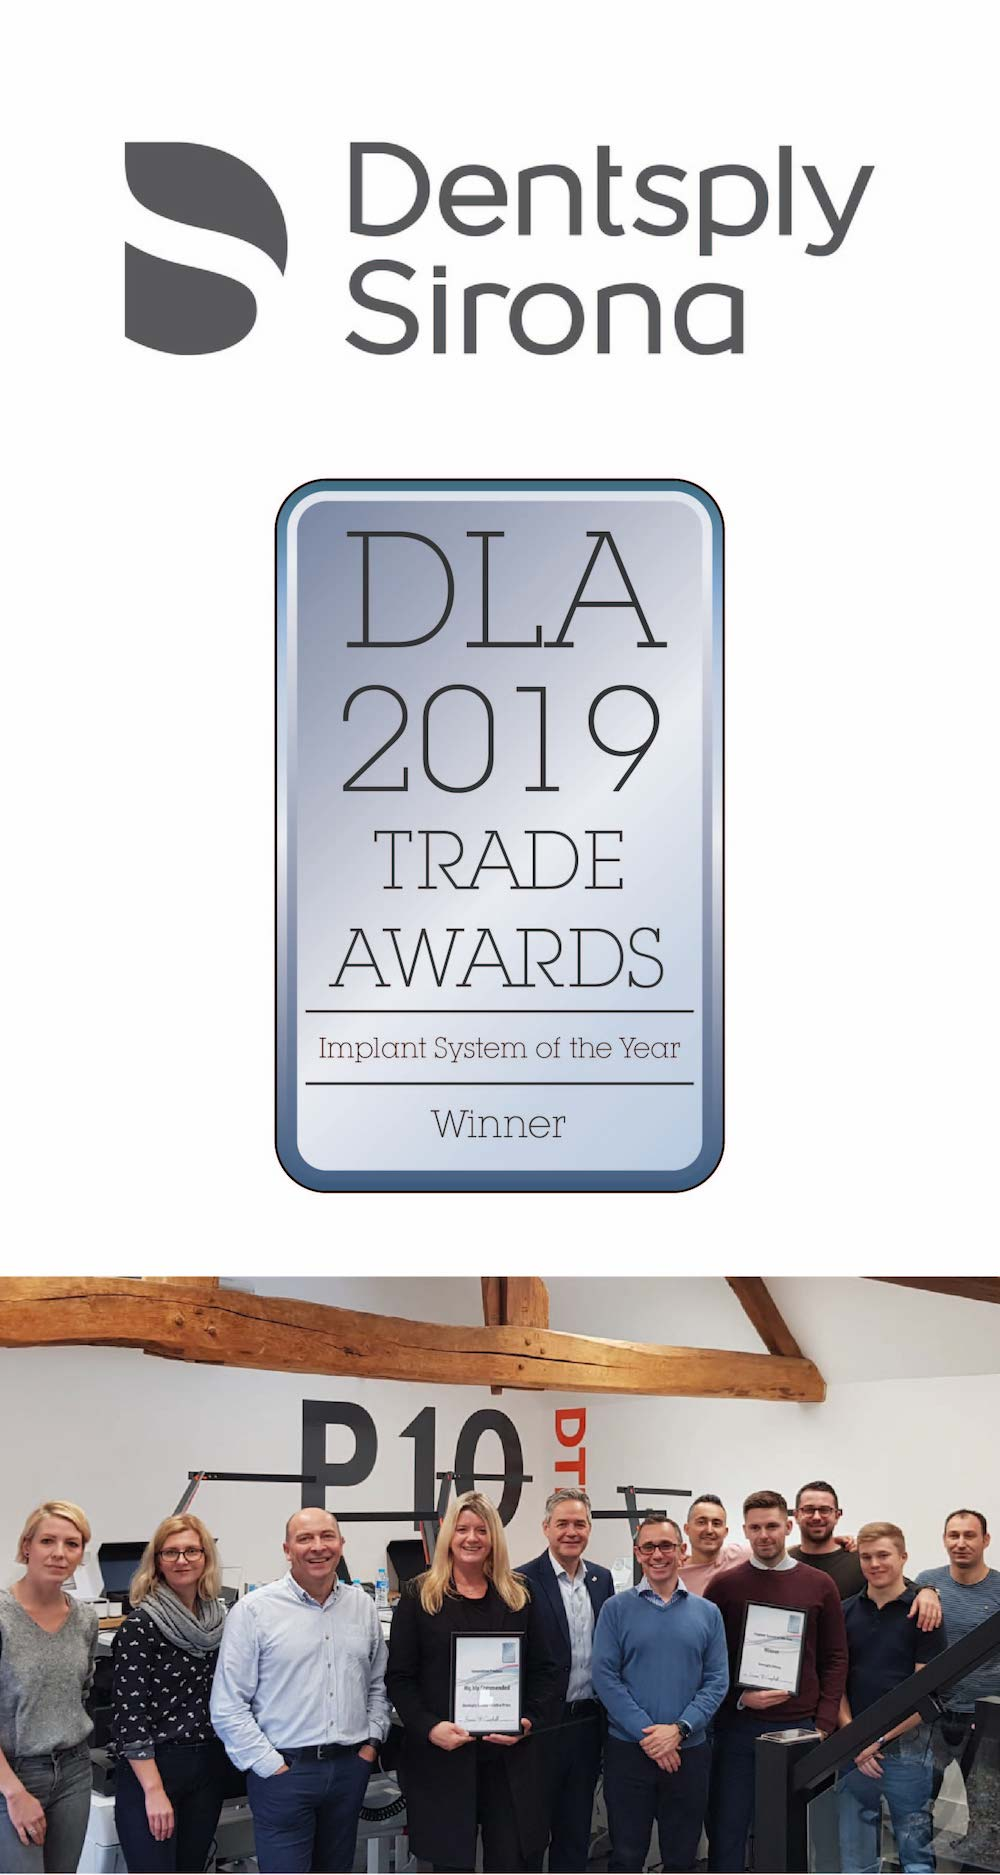 """""""On behalf of Dentsply Sirona Implants we are extremely honoured to have received 2 awards. Best Implant System and Most Innovative Product and Highly recommended for Celtra Press. In our ever changing market dynamics it's extremely satisfying and humbling to have this kind of recognition received by the DLA."""""""